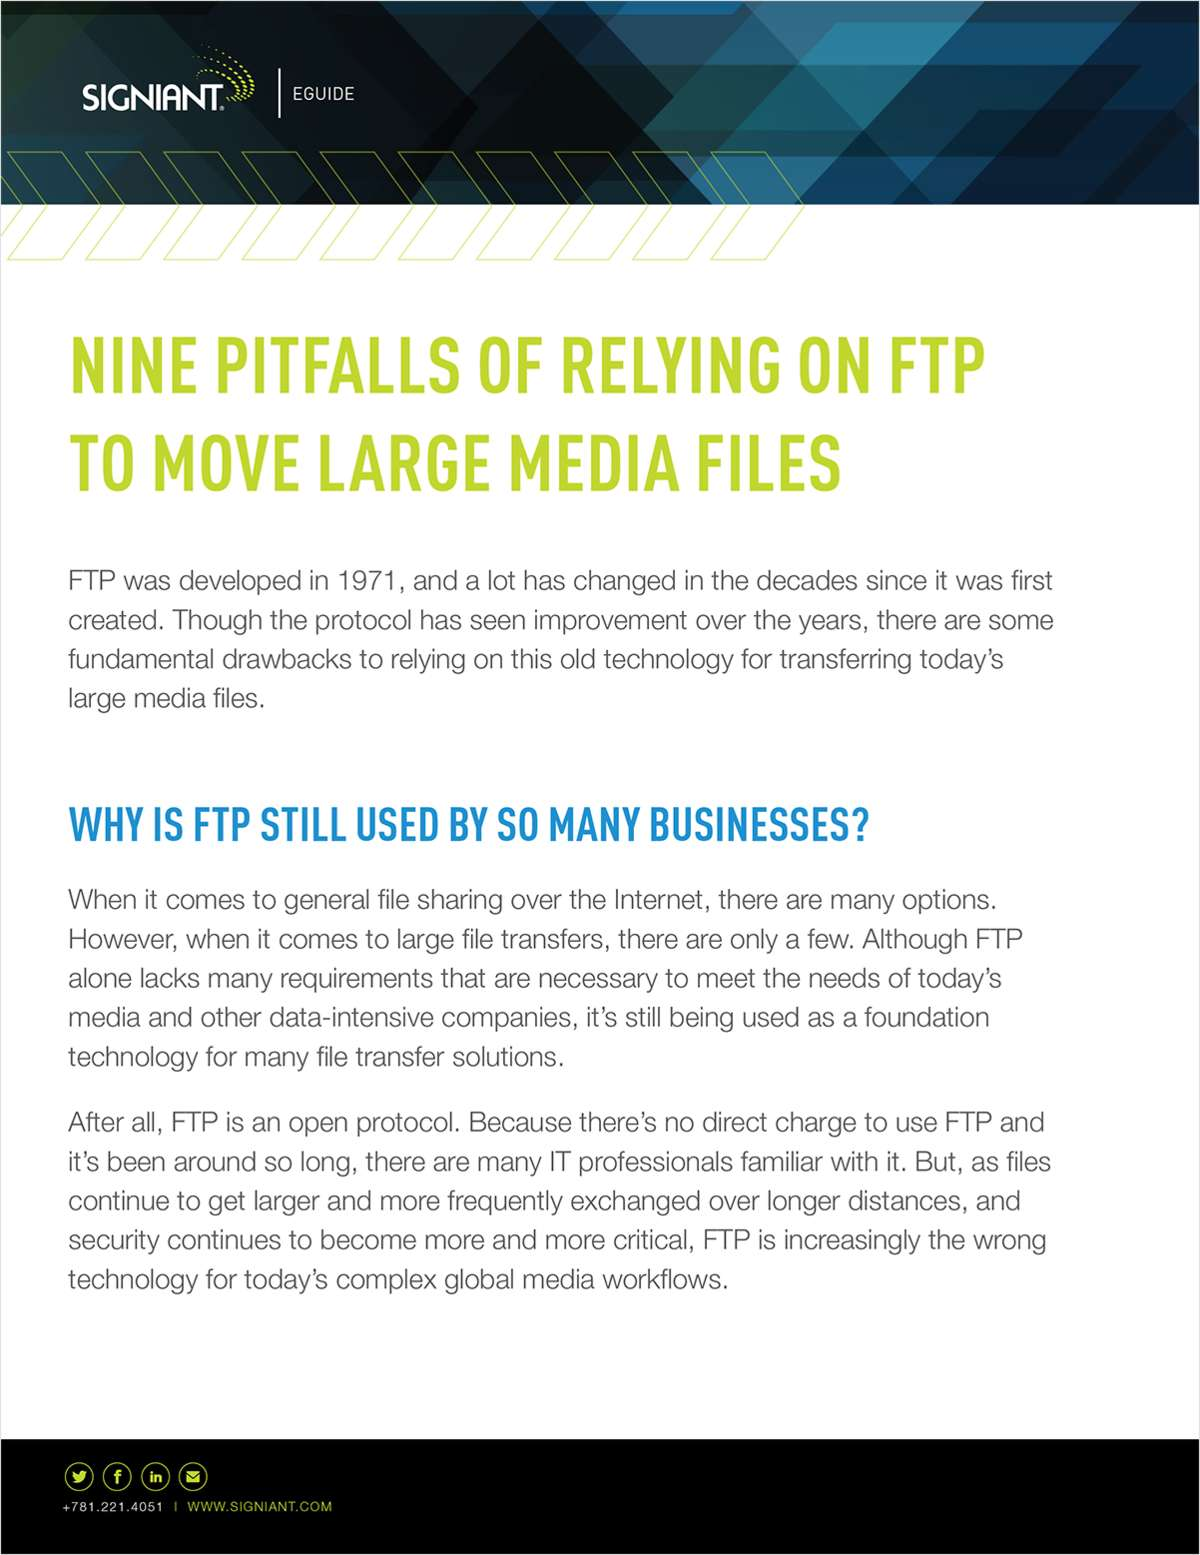 NINE PITFALLS OF RELYING ON FTP TO MOVE LARGE MEDIA FILES